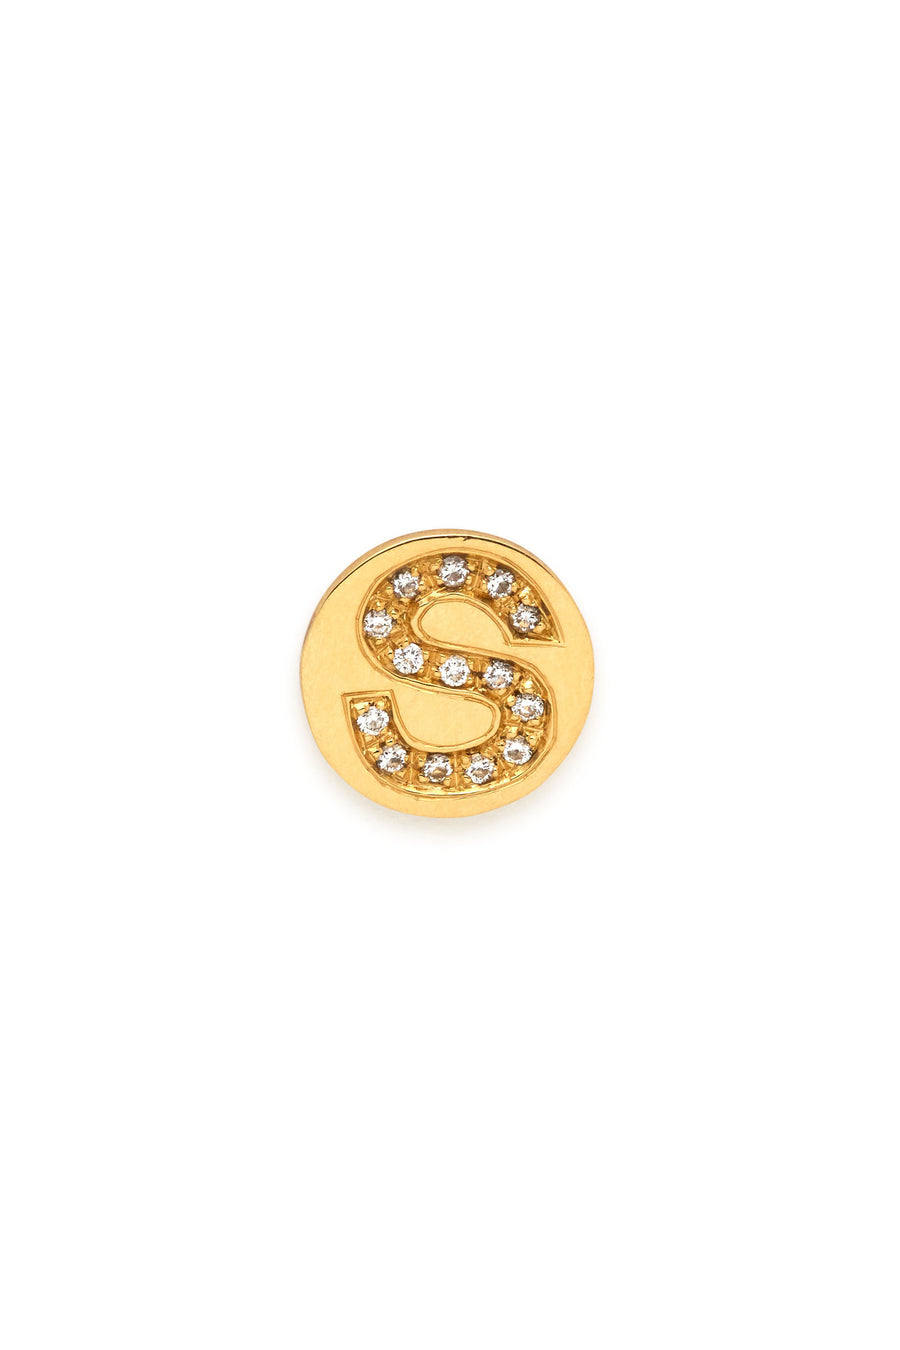 18K Gold & Diamonds Initial Magnetic Charm - S